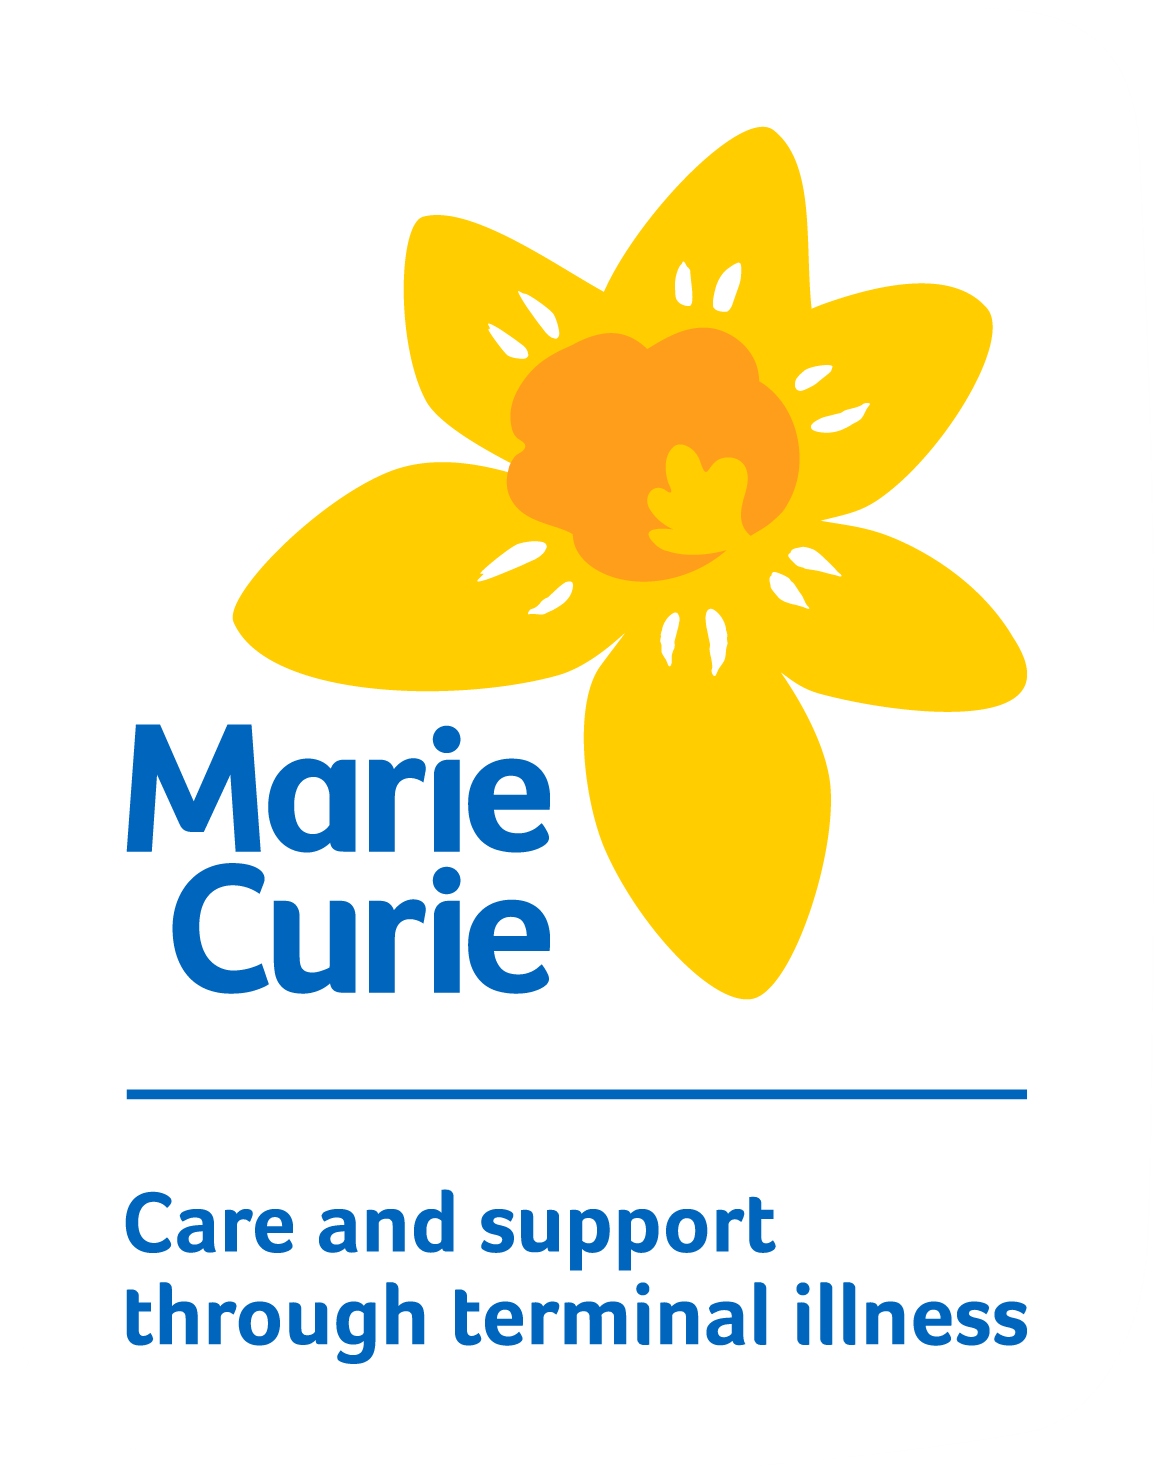 Marie Curie Png